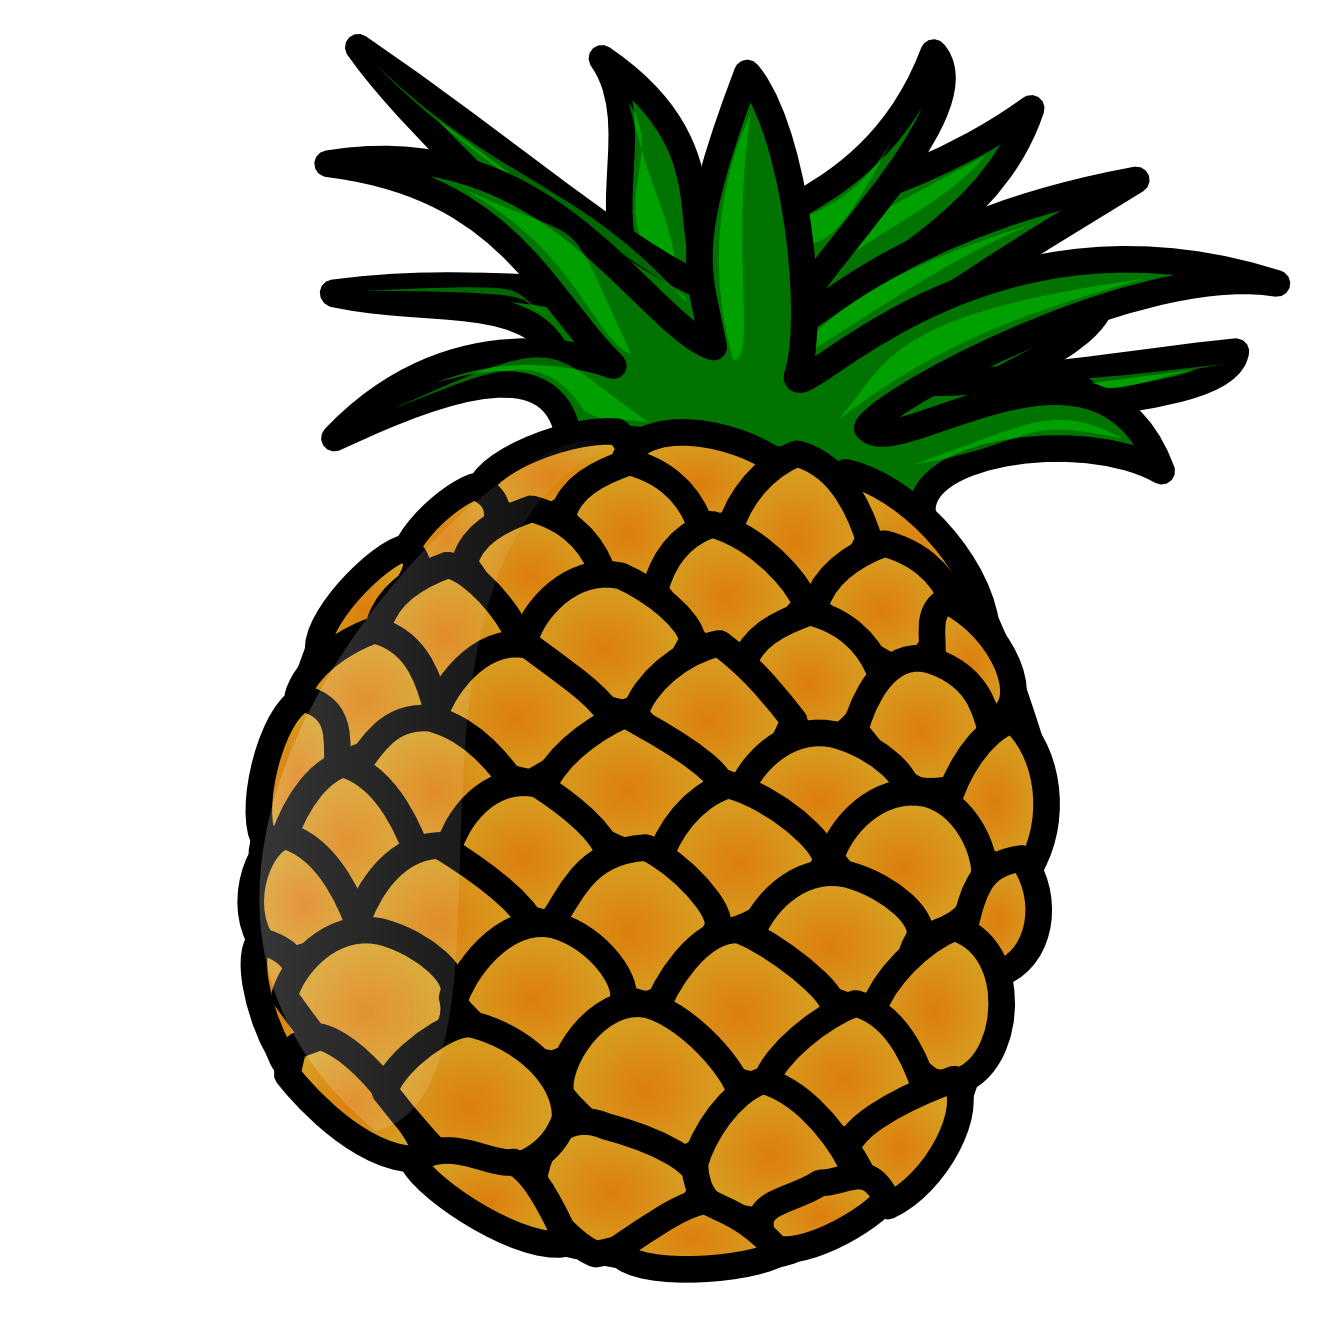 1331x1331 Images Of Pineapple Clipart Tumblr